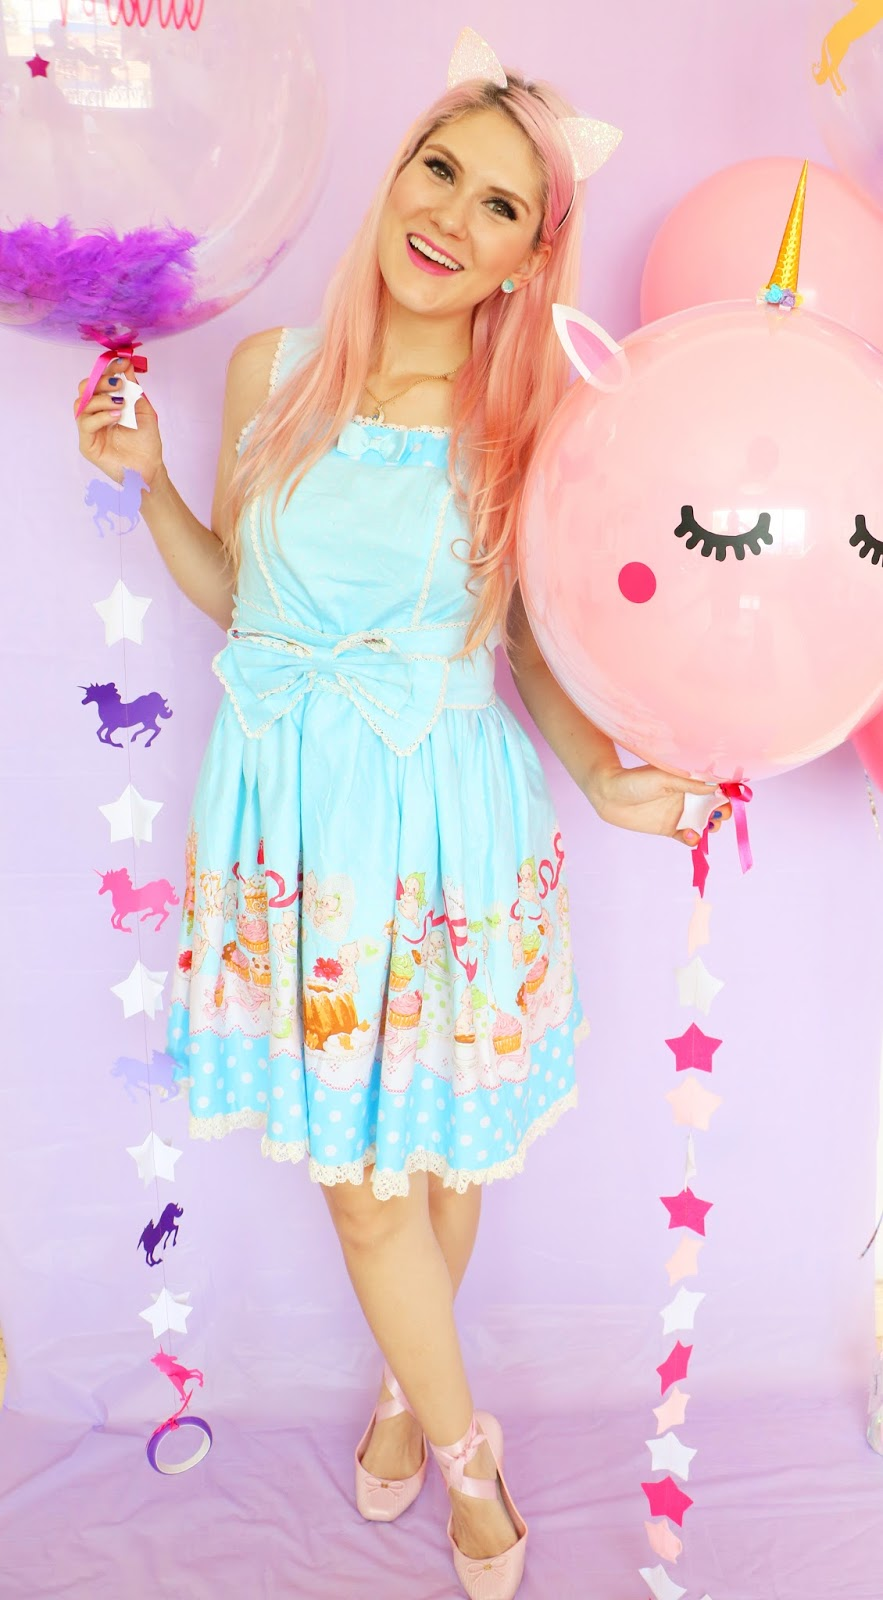 Adorable Pastel Unicorn Balloons